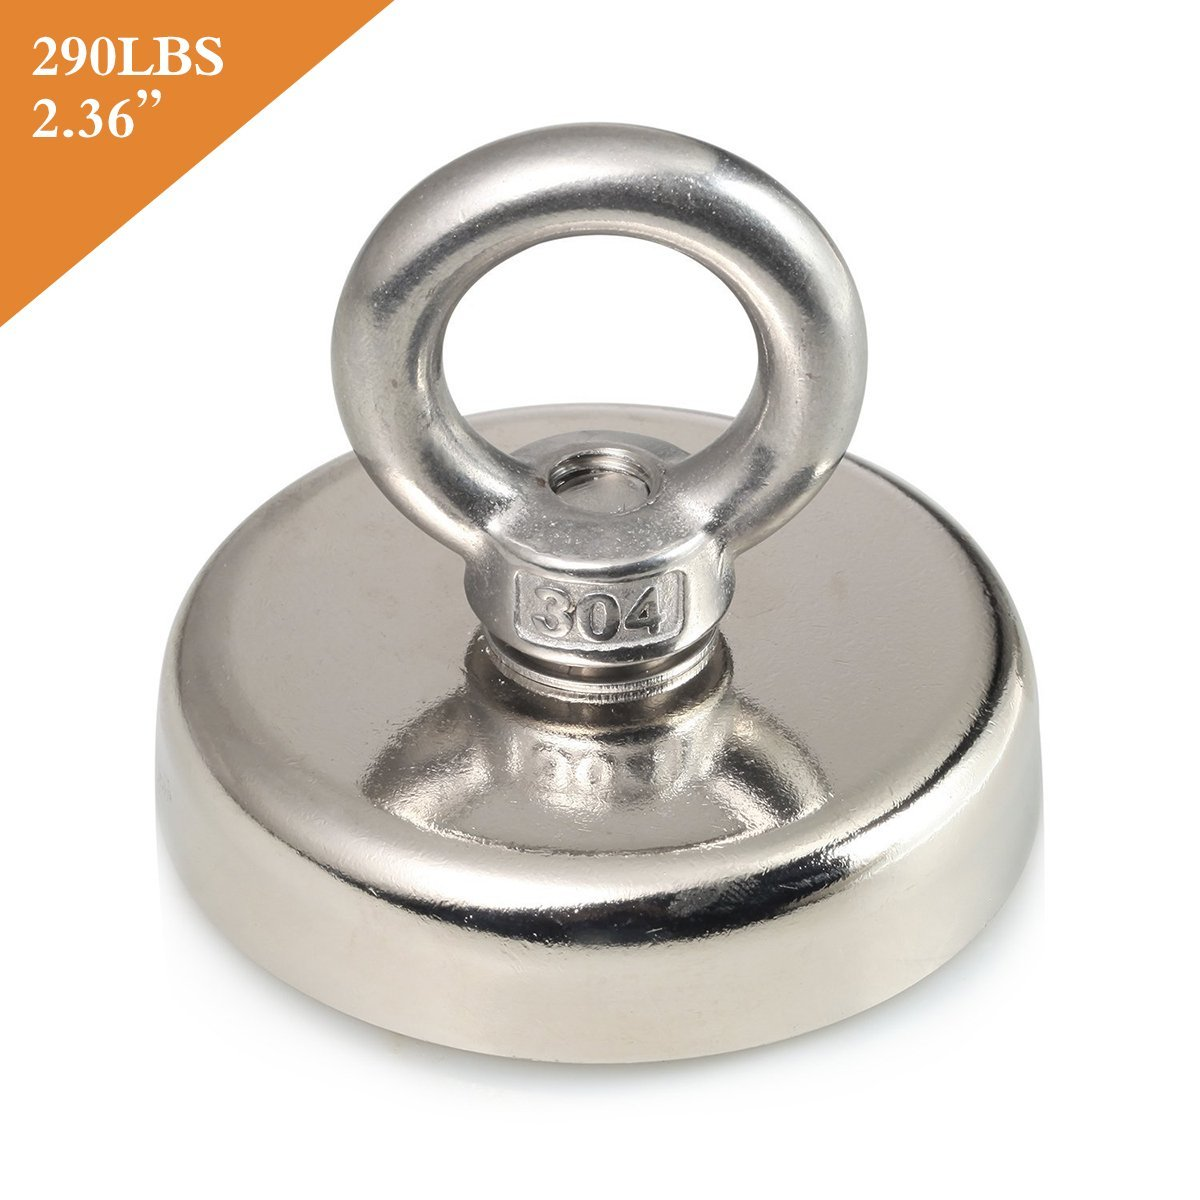 Aitsite Round Neodymium Eyebolt Fishing Magnet Super Power N52 Pulling Force 290LB(132KG) Diameter x 60mm Thick x 15mm for Magnet Fishing and Salvage in River MAG-NJ60